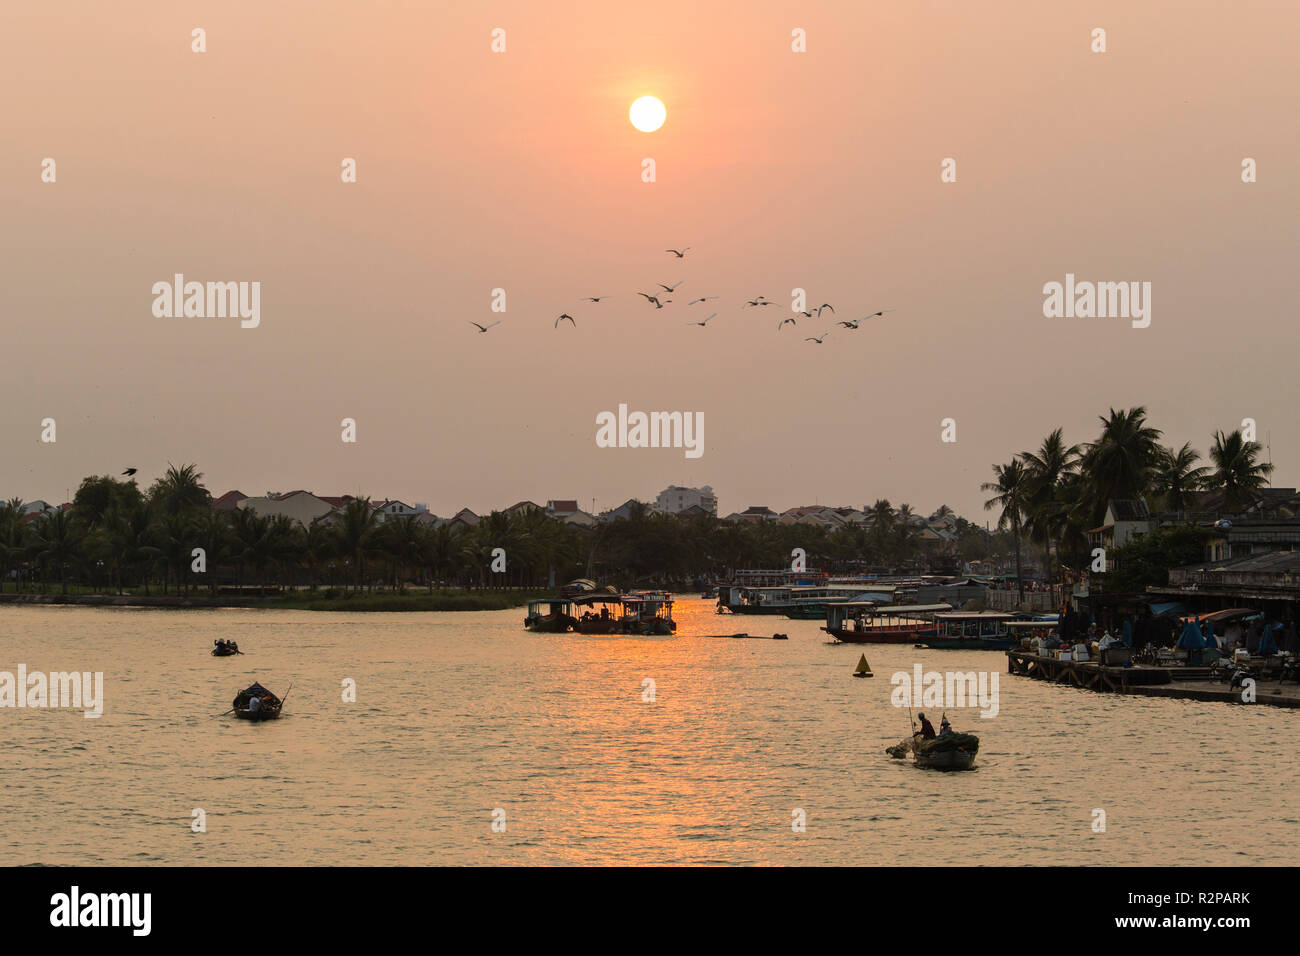 Evening mood, low sun above river in Hoi An, Vietnam, returning fishing boats - Stock Image